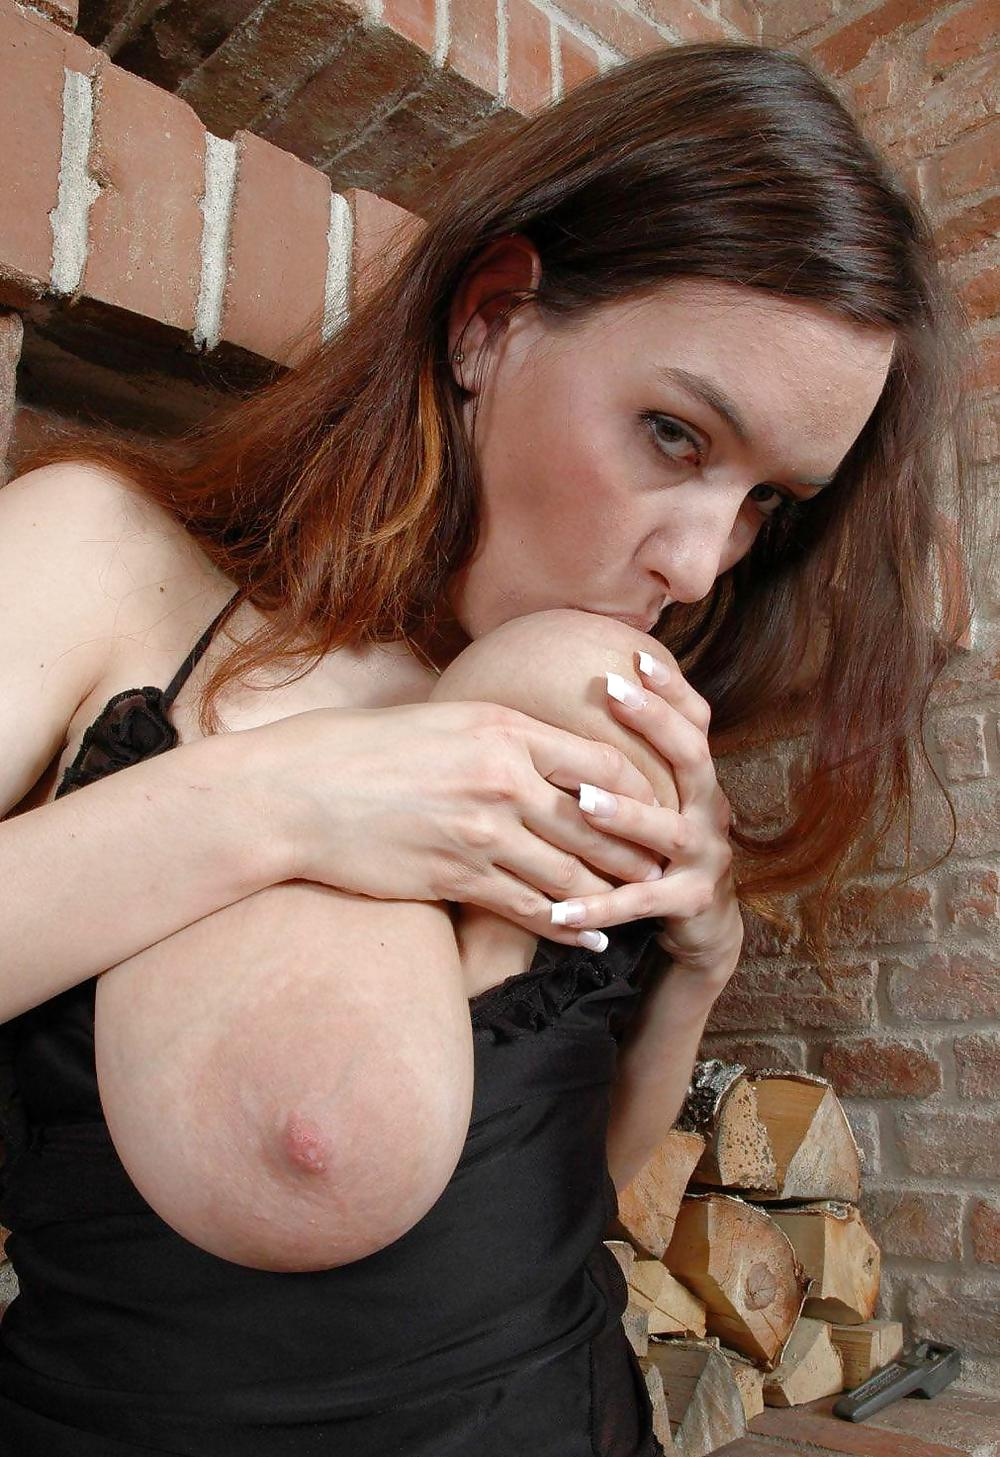 girls-biting-their-own-tits-mature-sex-forced-movie-free